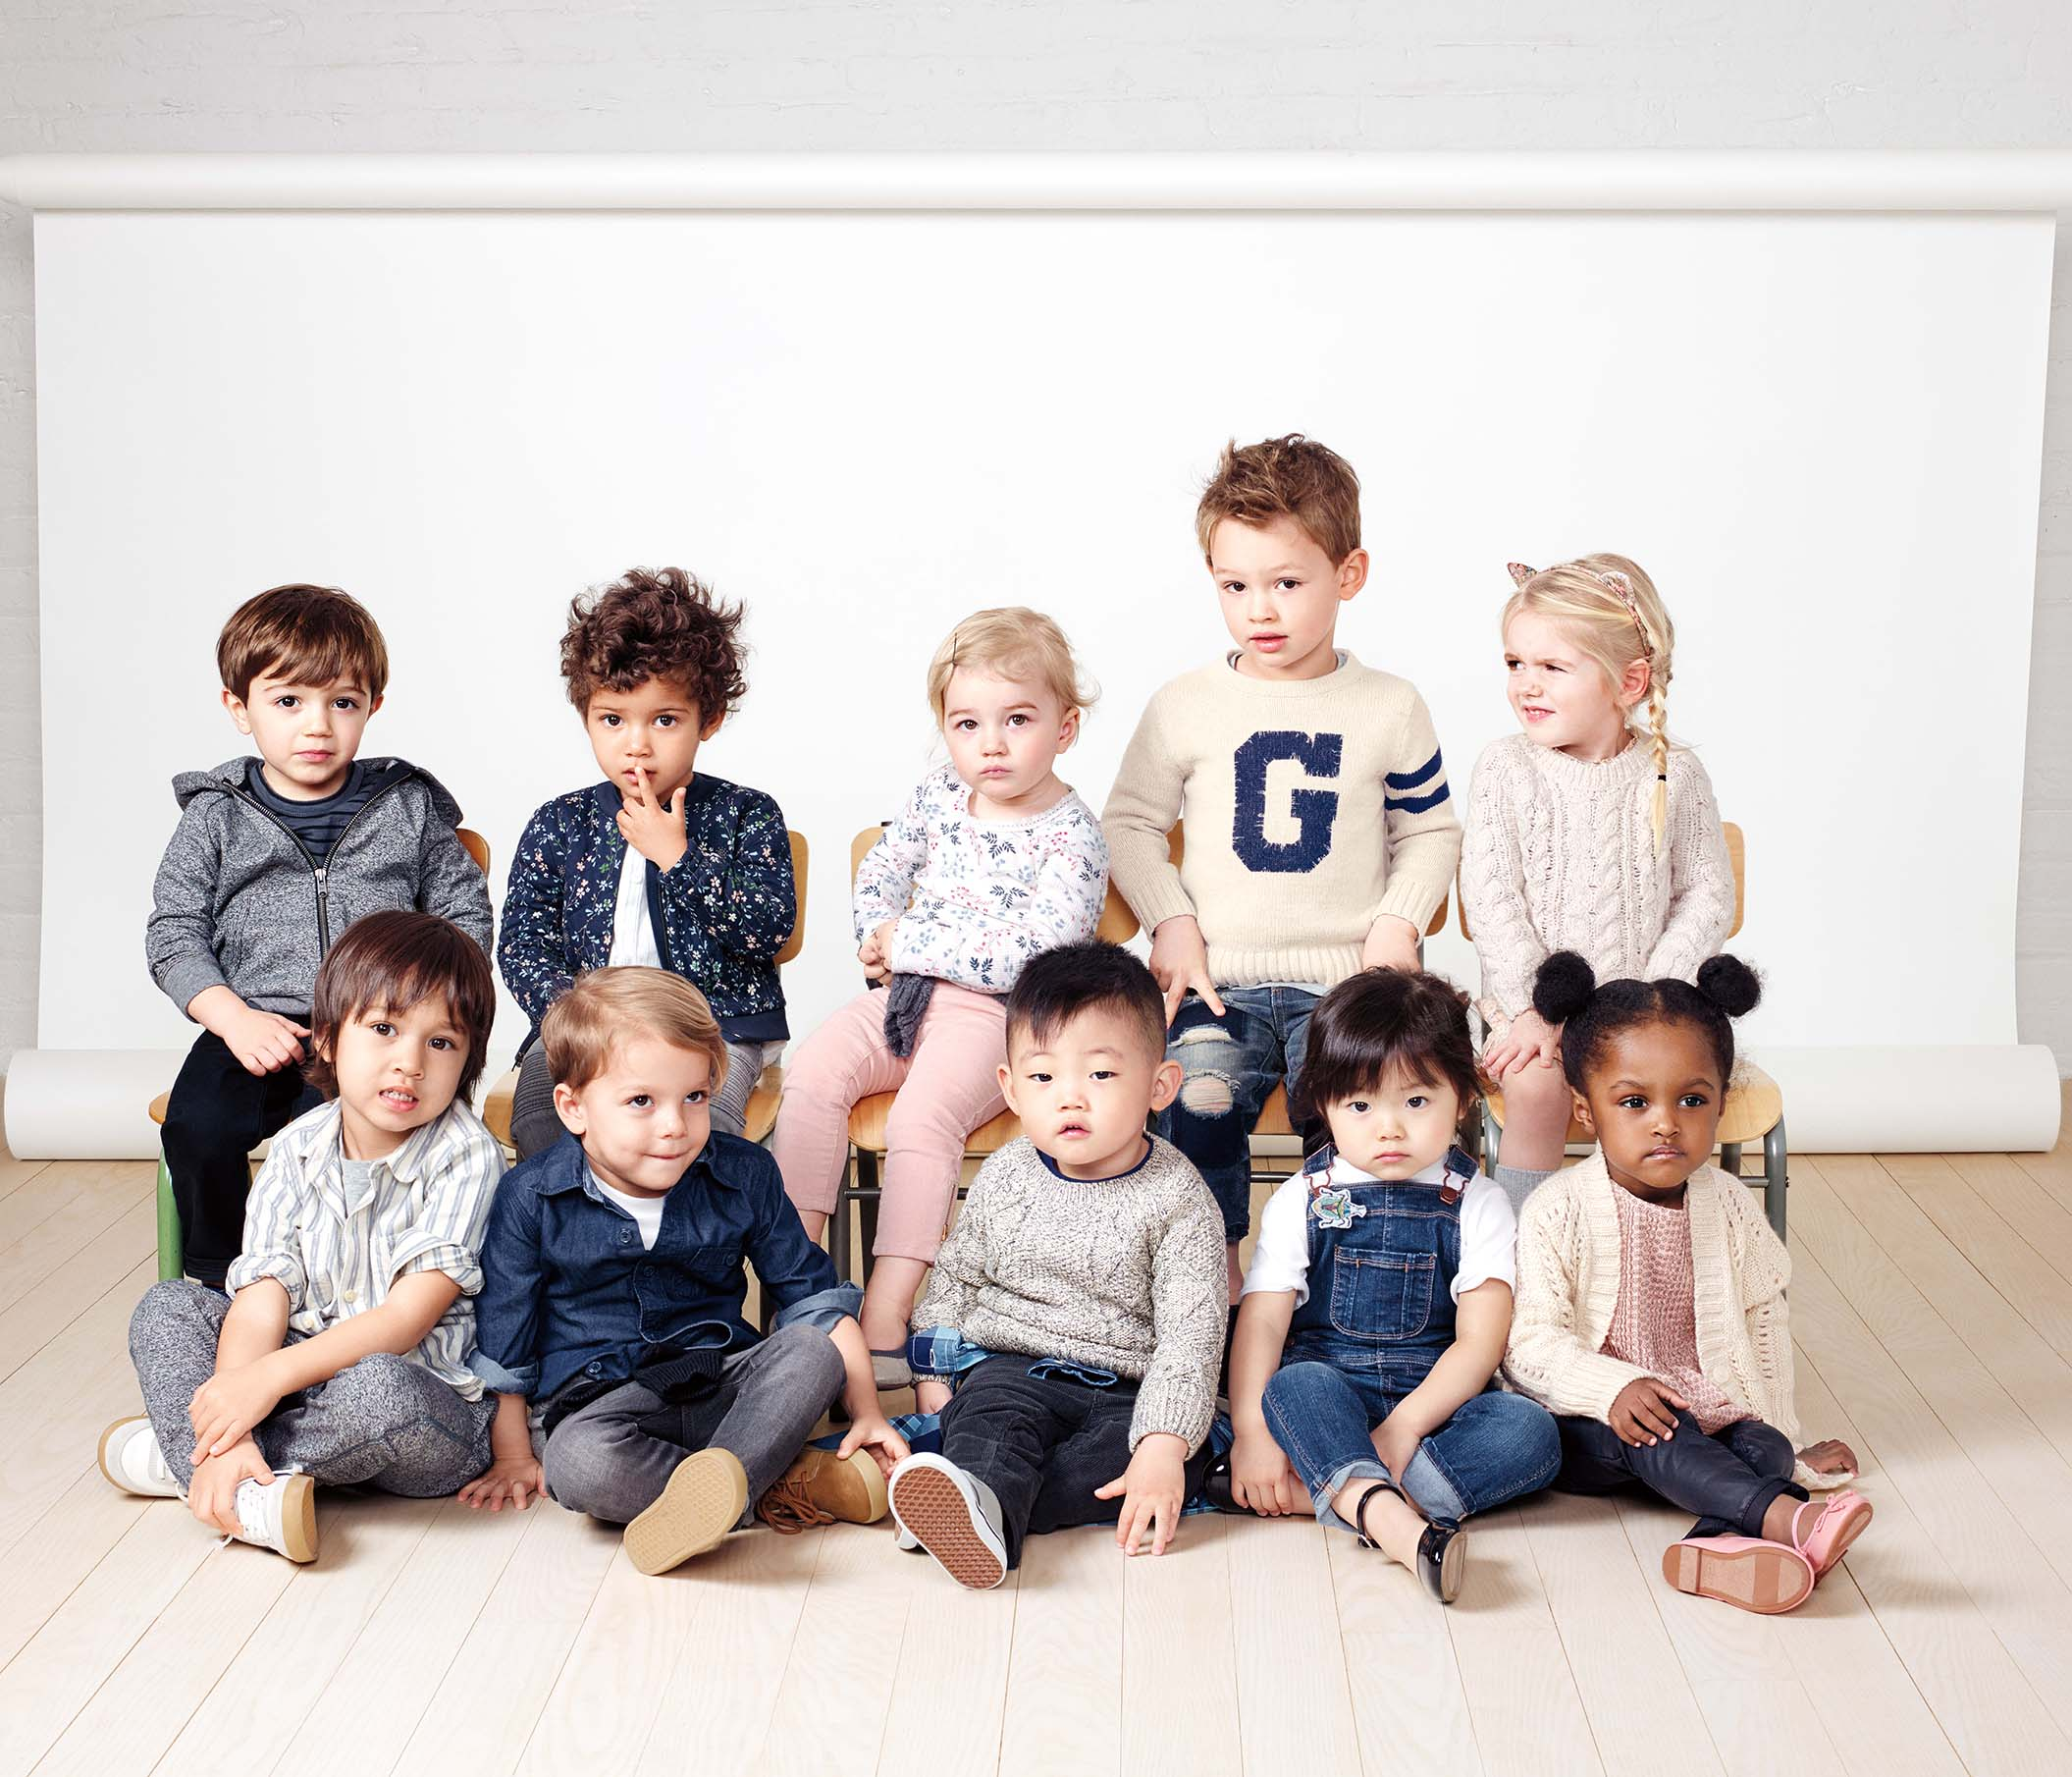 GapKidsClass of 2014 casting call